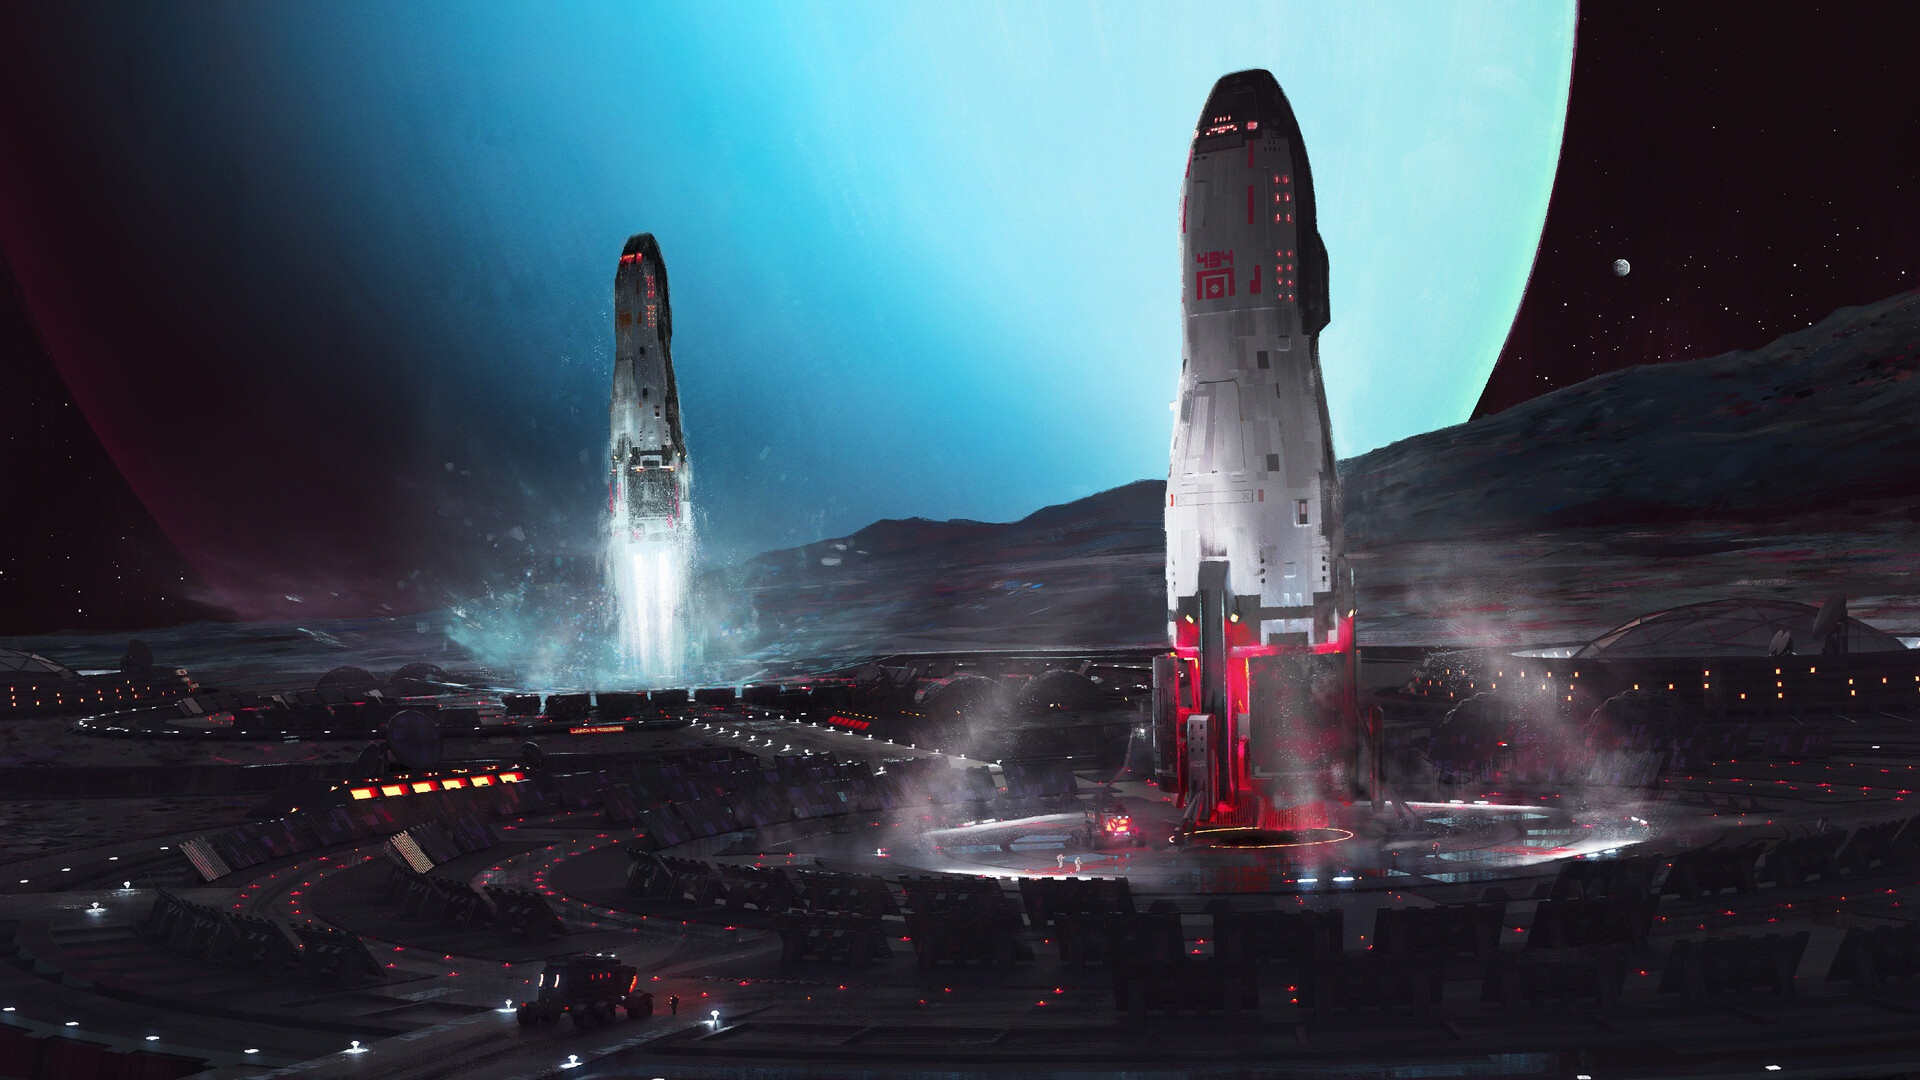 General 1920x1080 futuristic science fiction planet space space art digital art spaceship Spaceport Maciej Rebisz